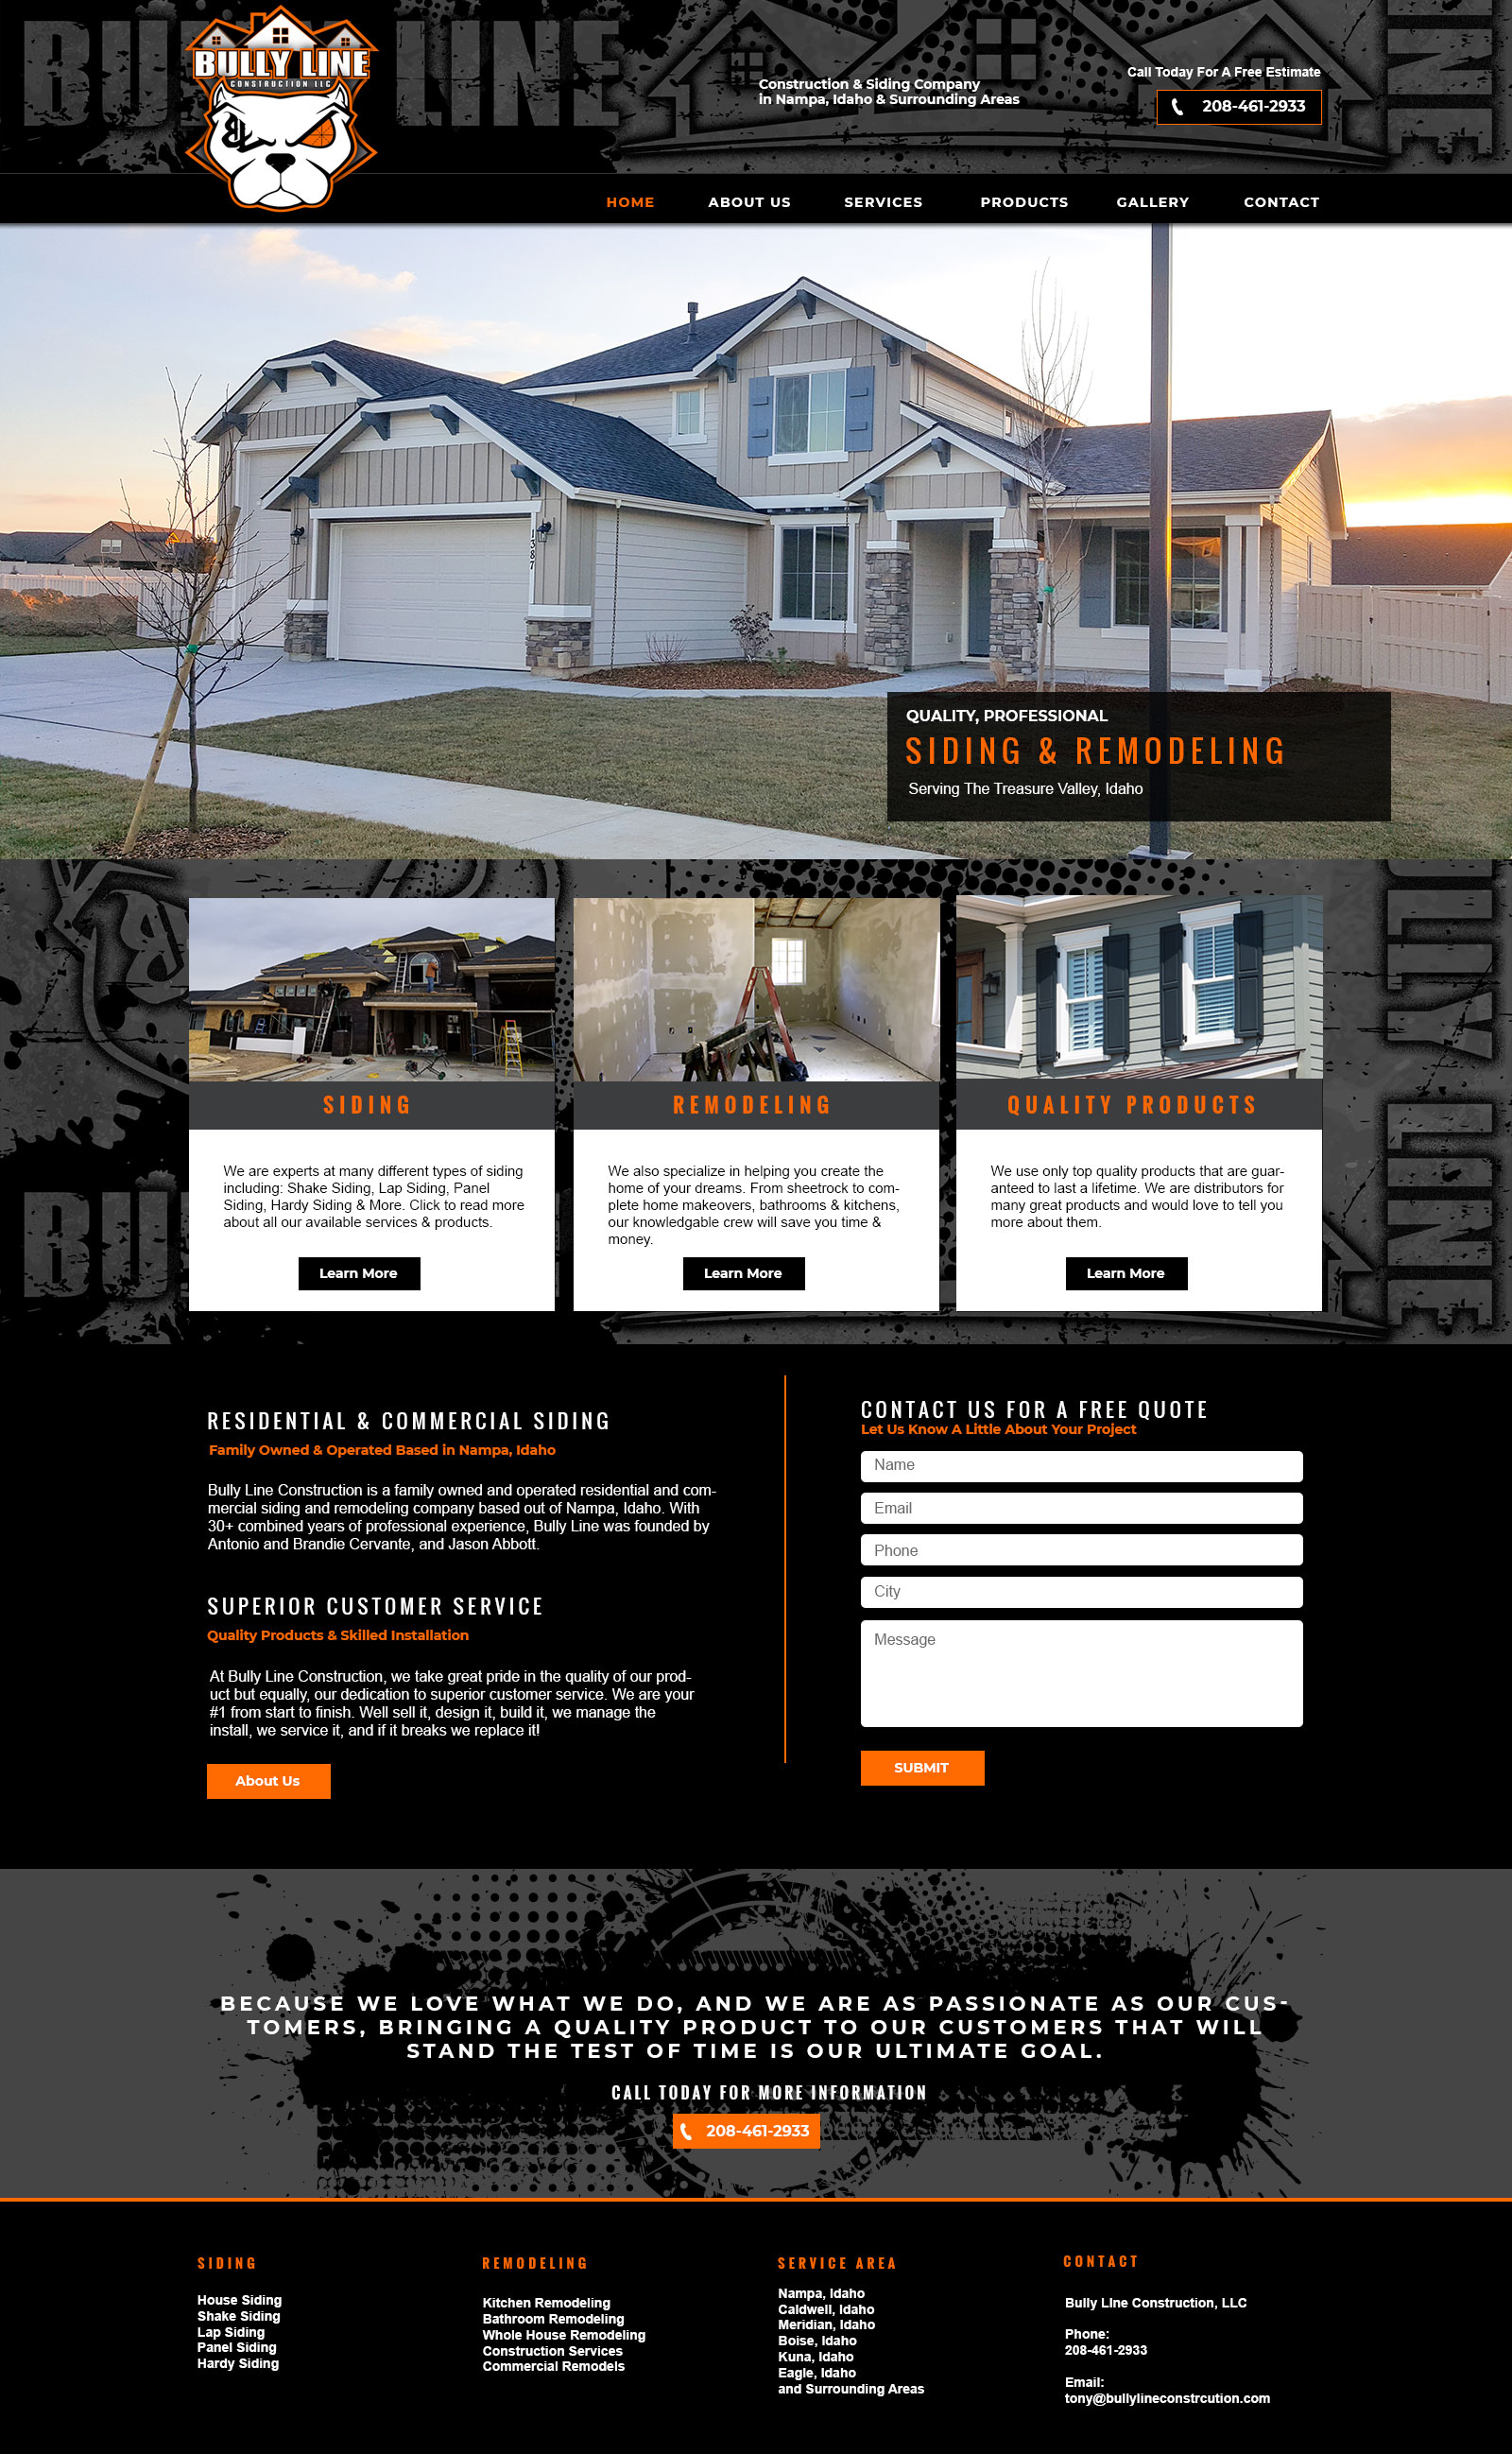 Siding And Remodeling In The Treasure Valley 208 461 2933